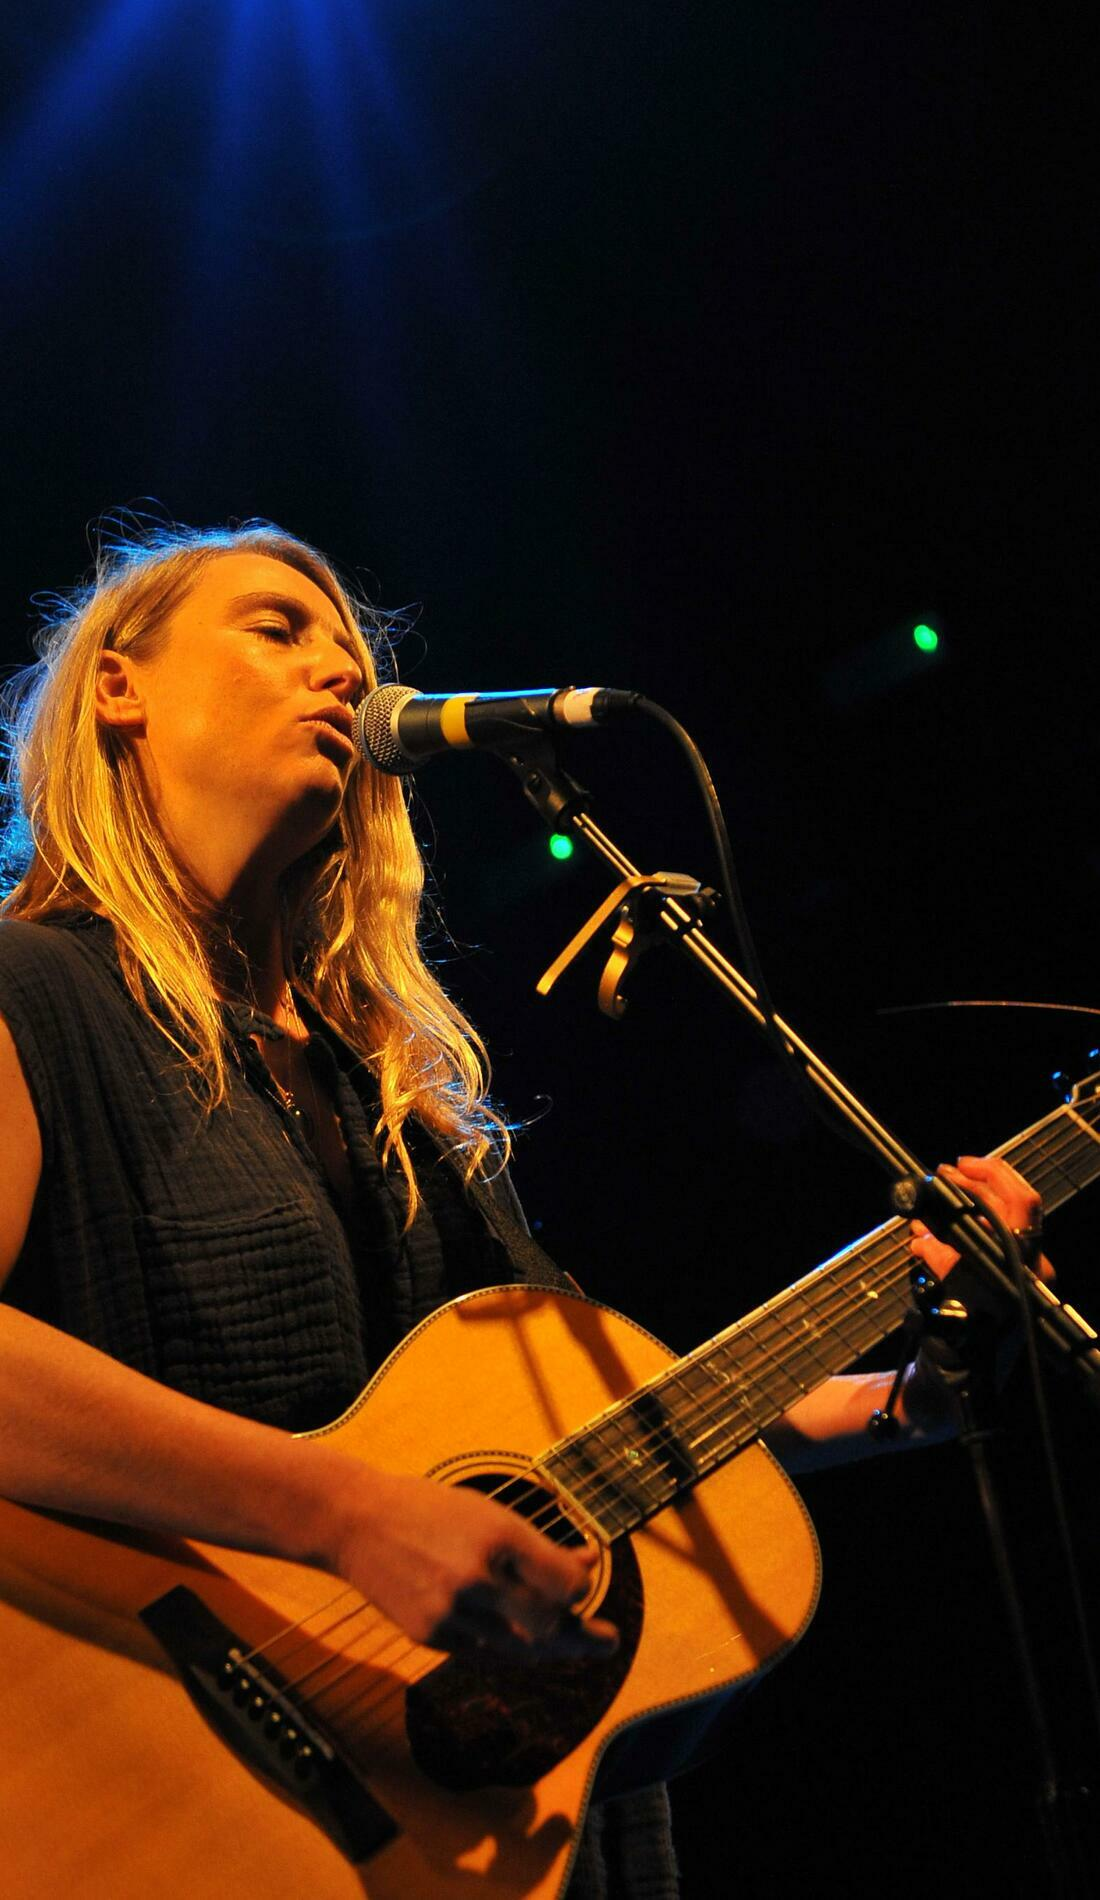 A Lissie live event